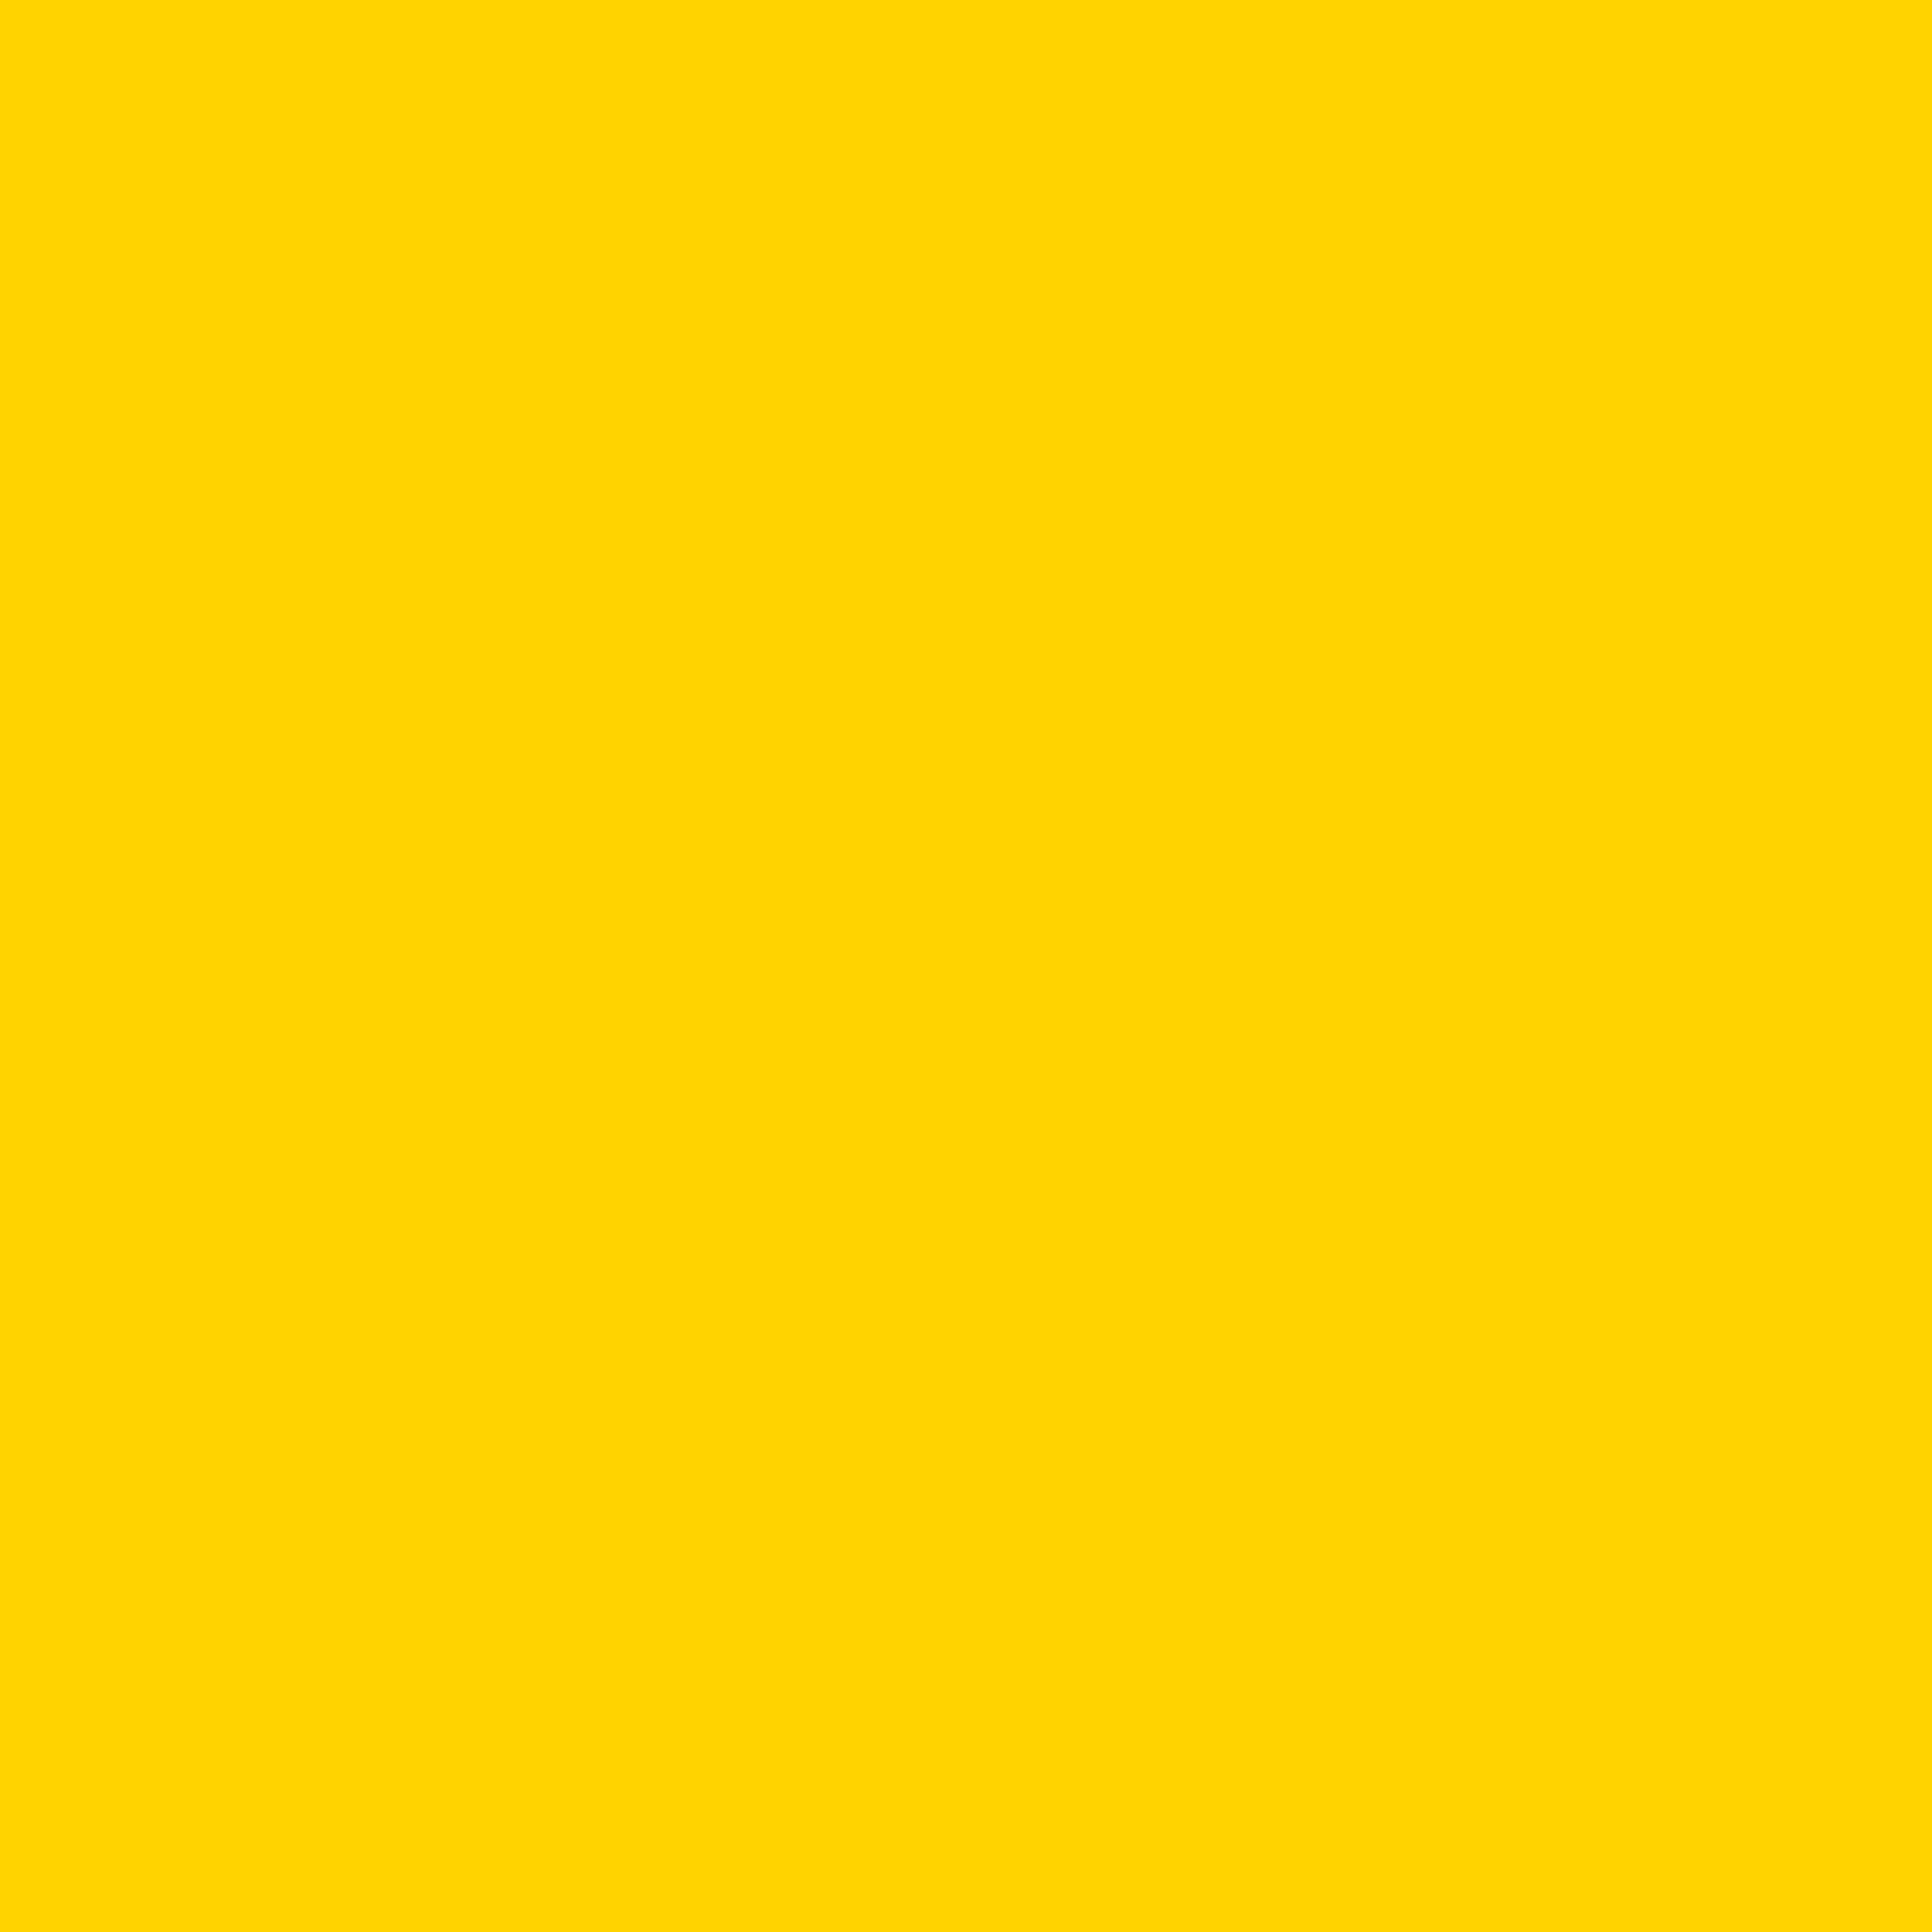 2732x2732 Yellow NCS Solid Color Background